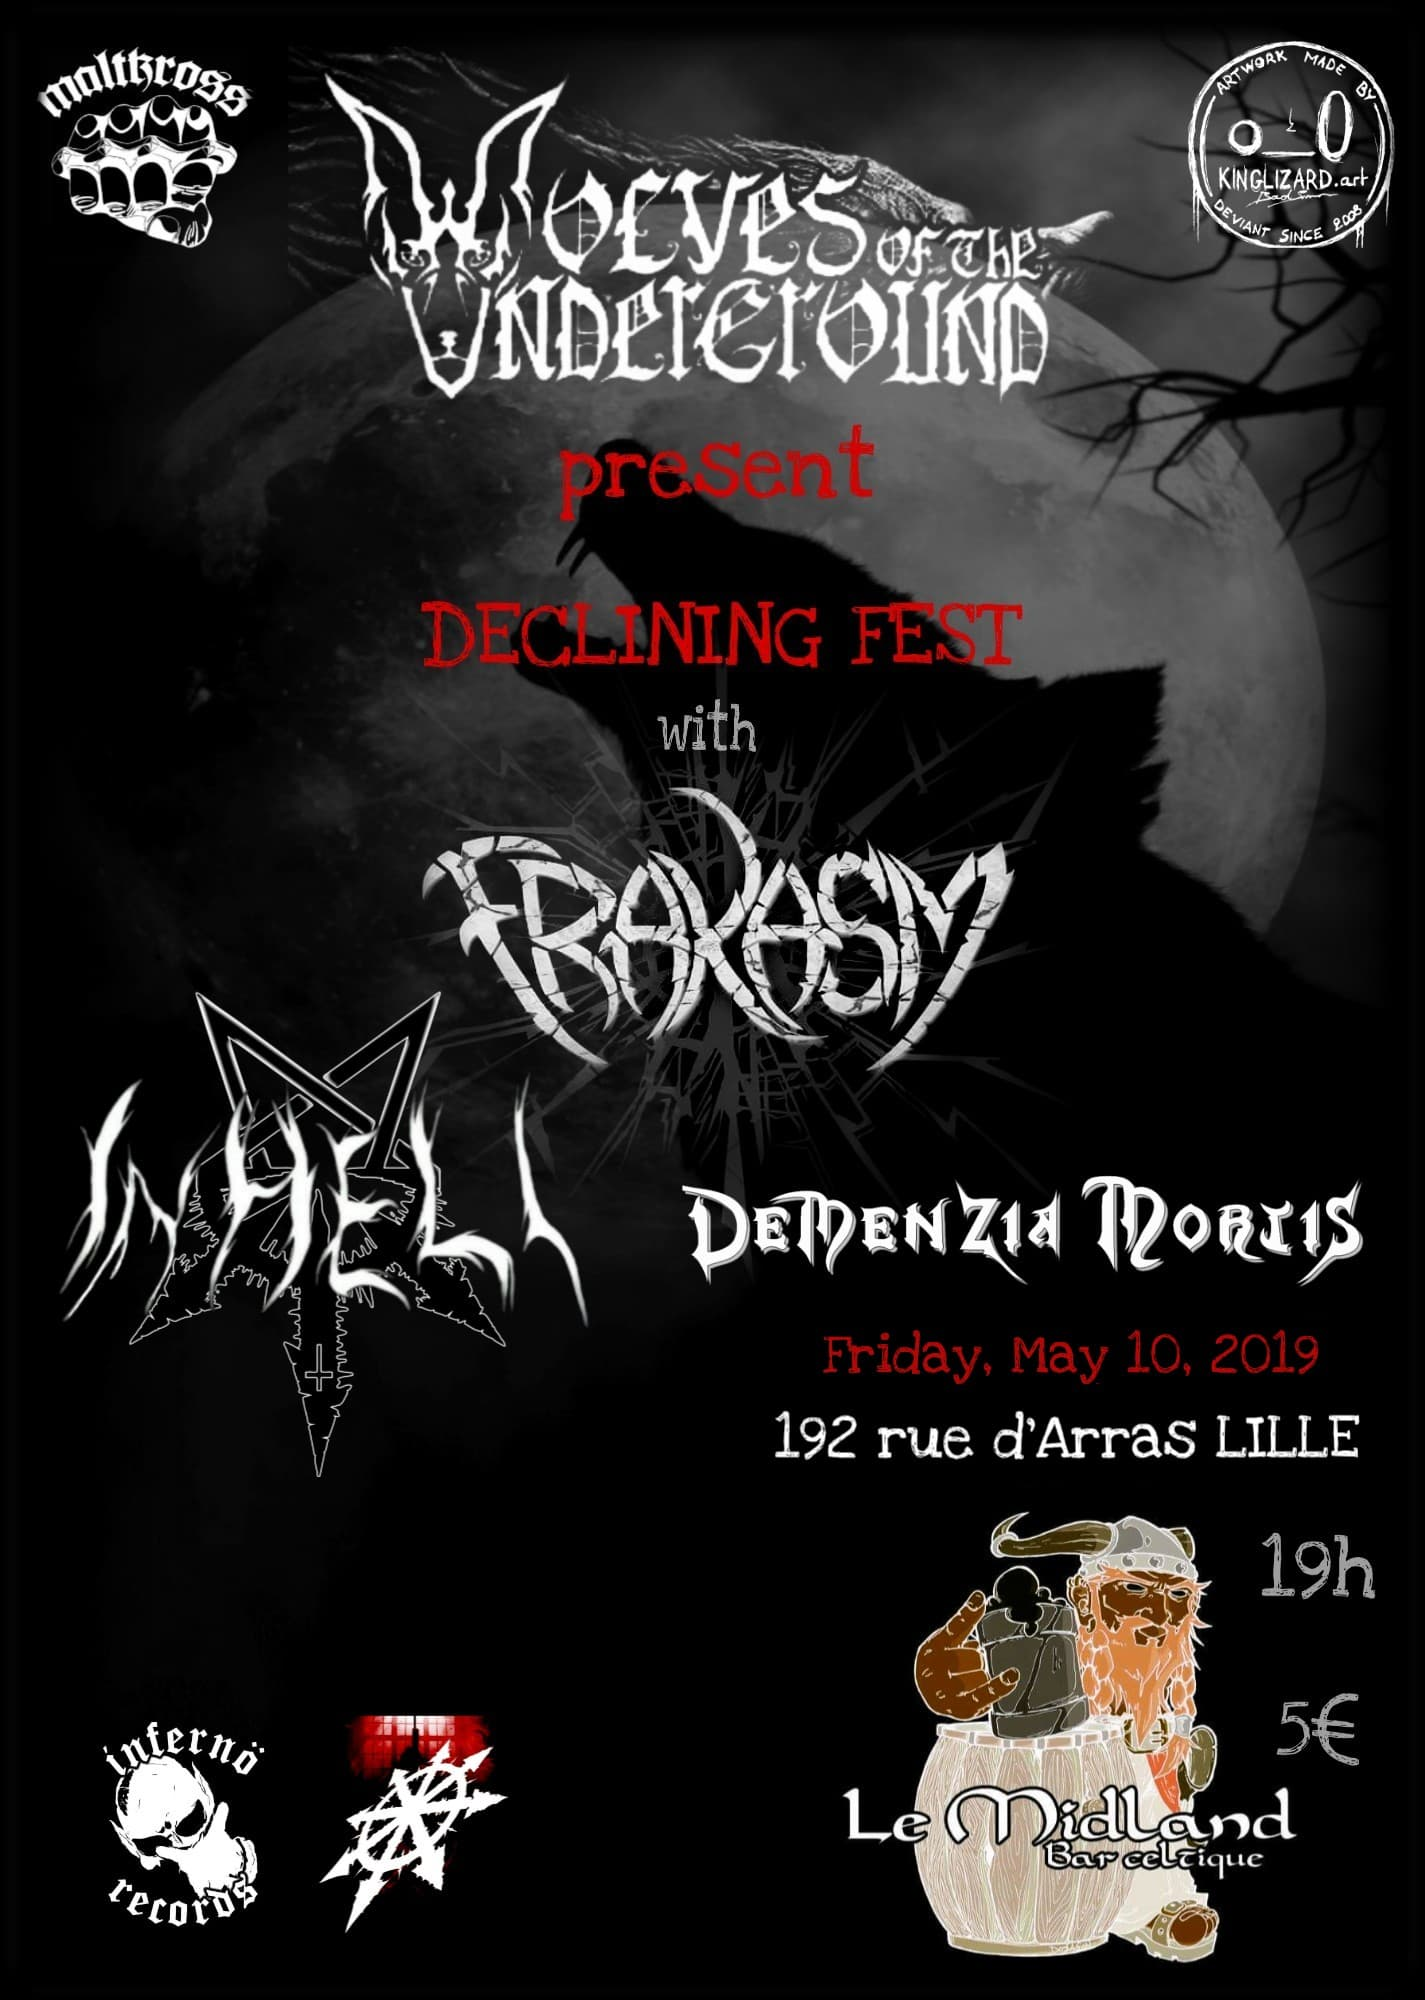 http://inhellband.com/IMAGESSITEWEB/AFFICHES-CONCERTS/affiche-concertmidland-INHELL10-05-19.jpg